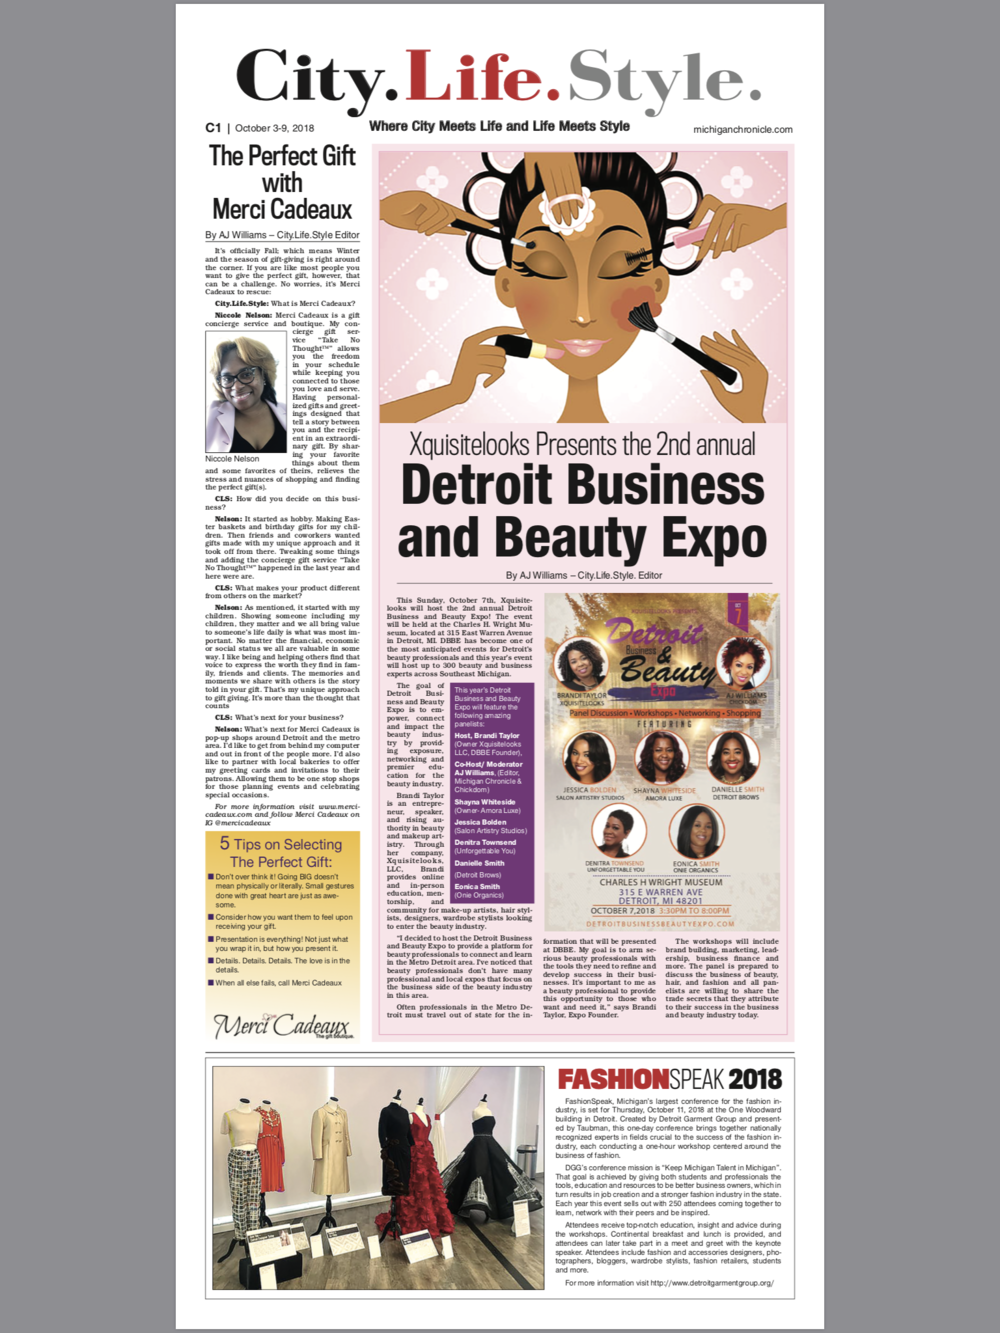 Michigan Chronicle - City.Life.Style. The Perfect Gift with Merci Cadeauxclick the image for full article